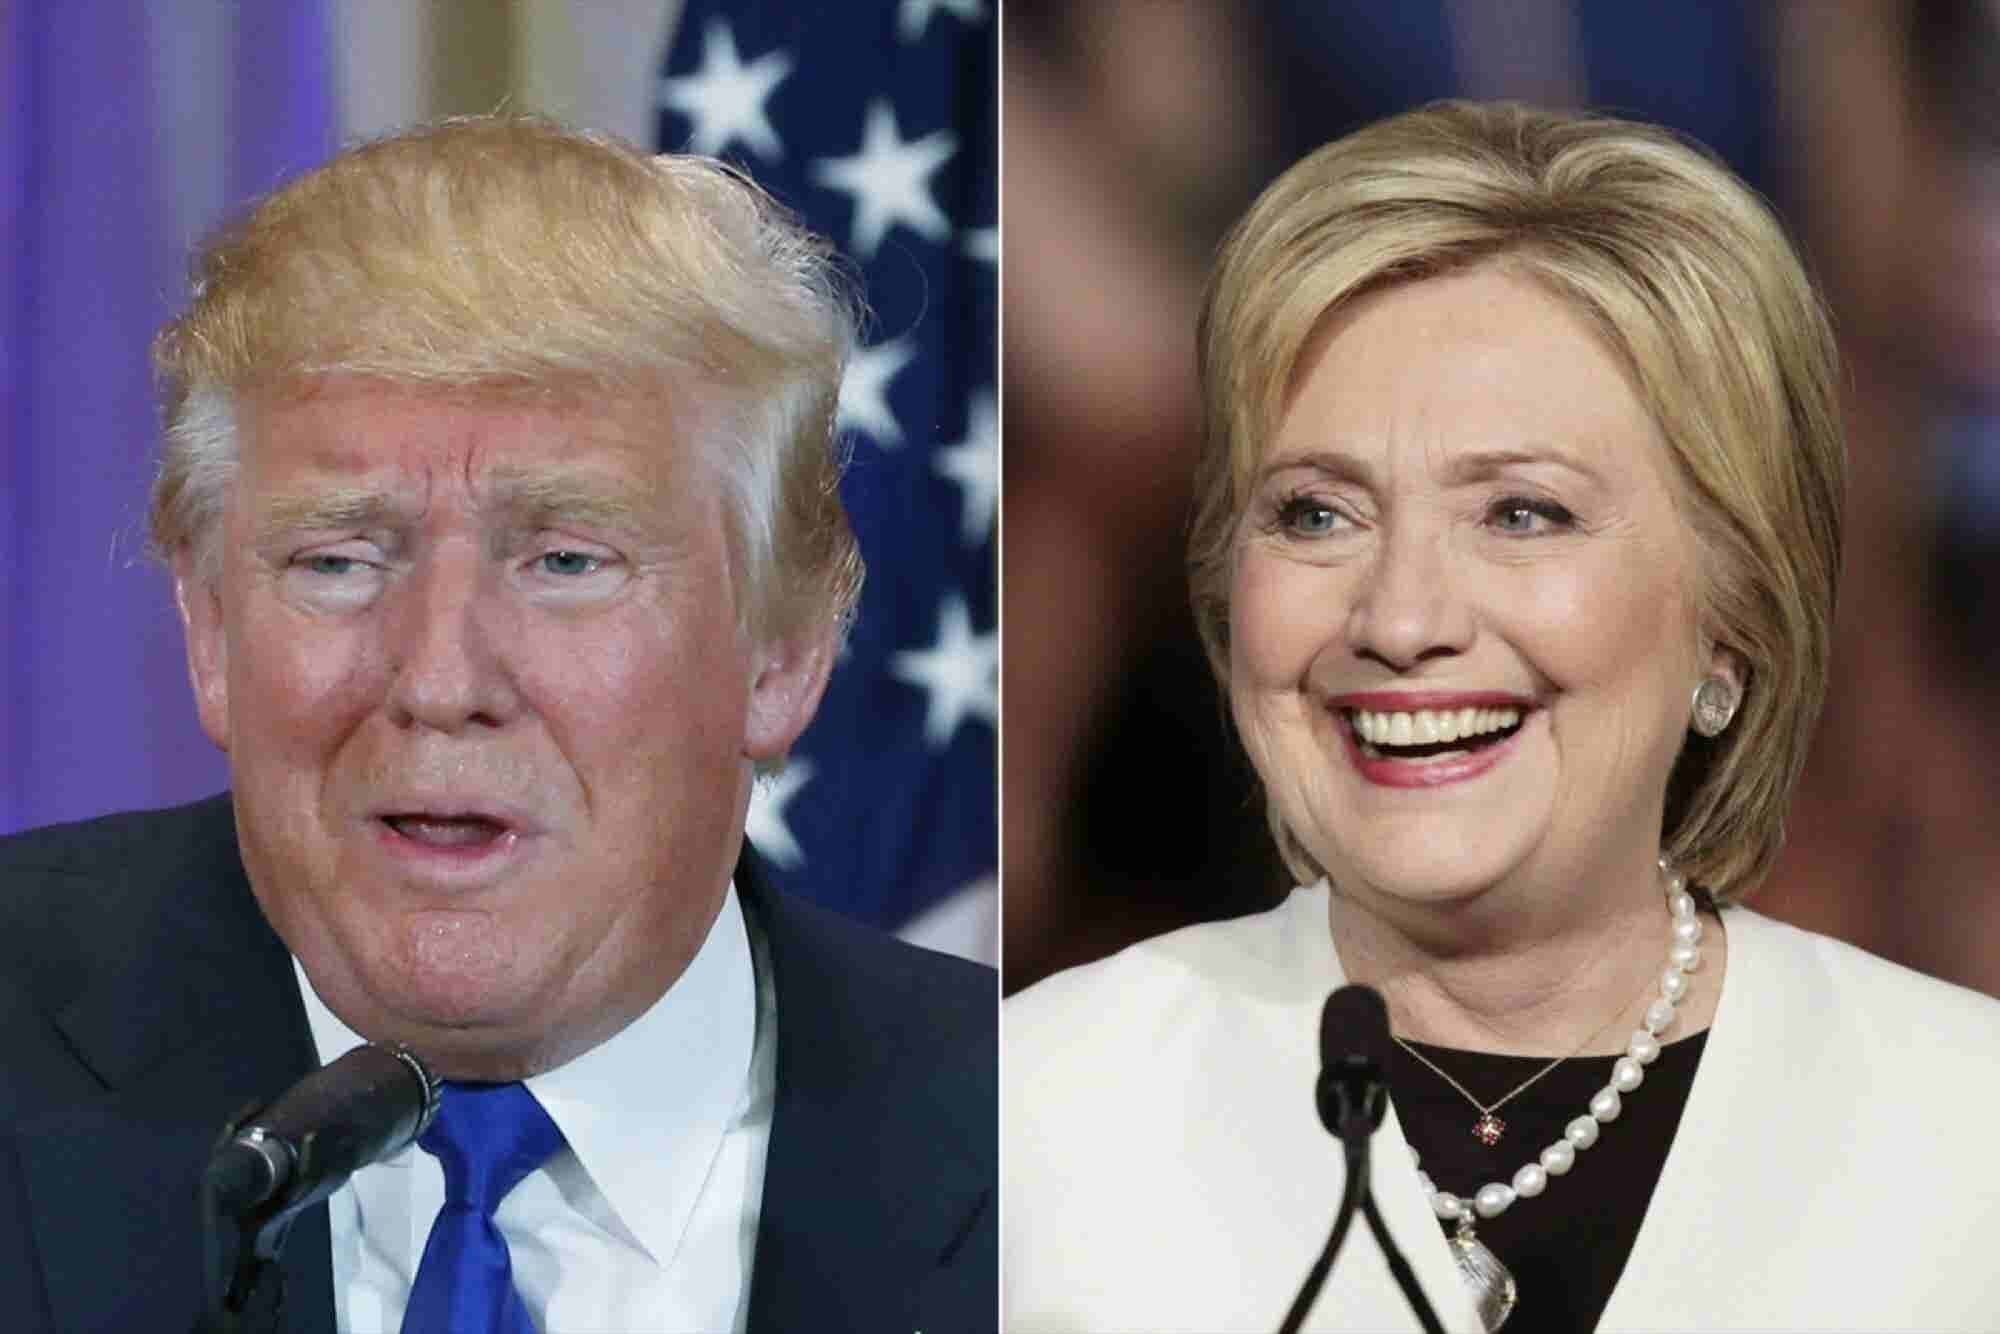 U.S. Tech Firms Urge Presidential Candidates to Embrace Trade, High-Te...